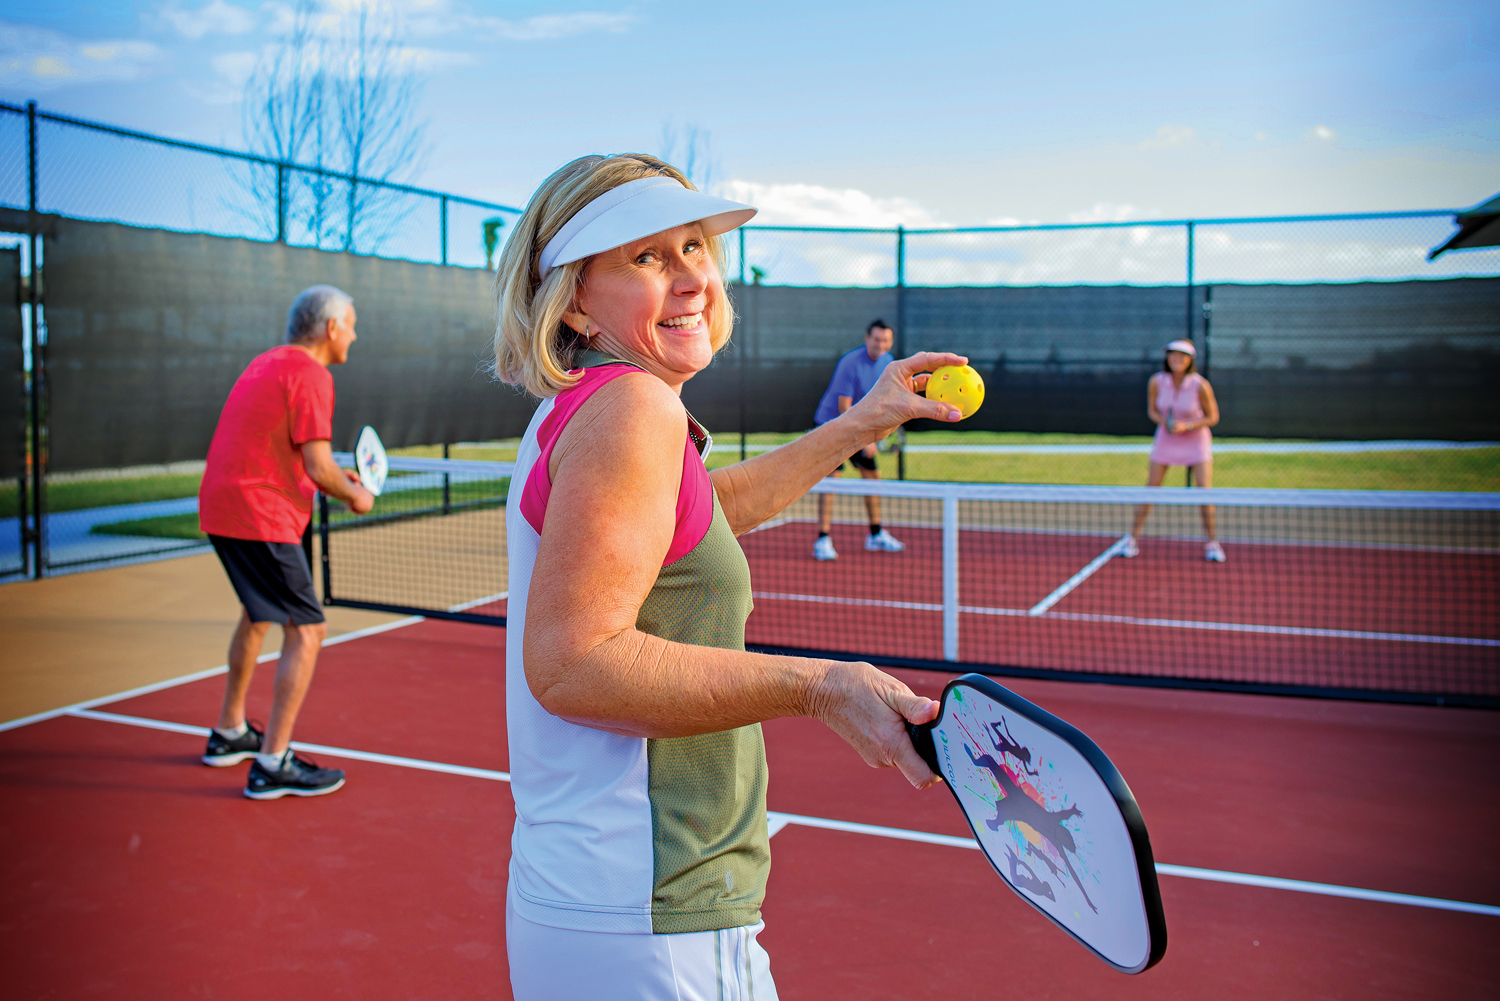 Woman playing pickleball holding racquet with 3 people smiling at camera.